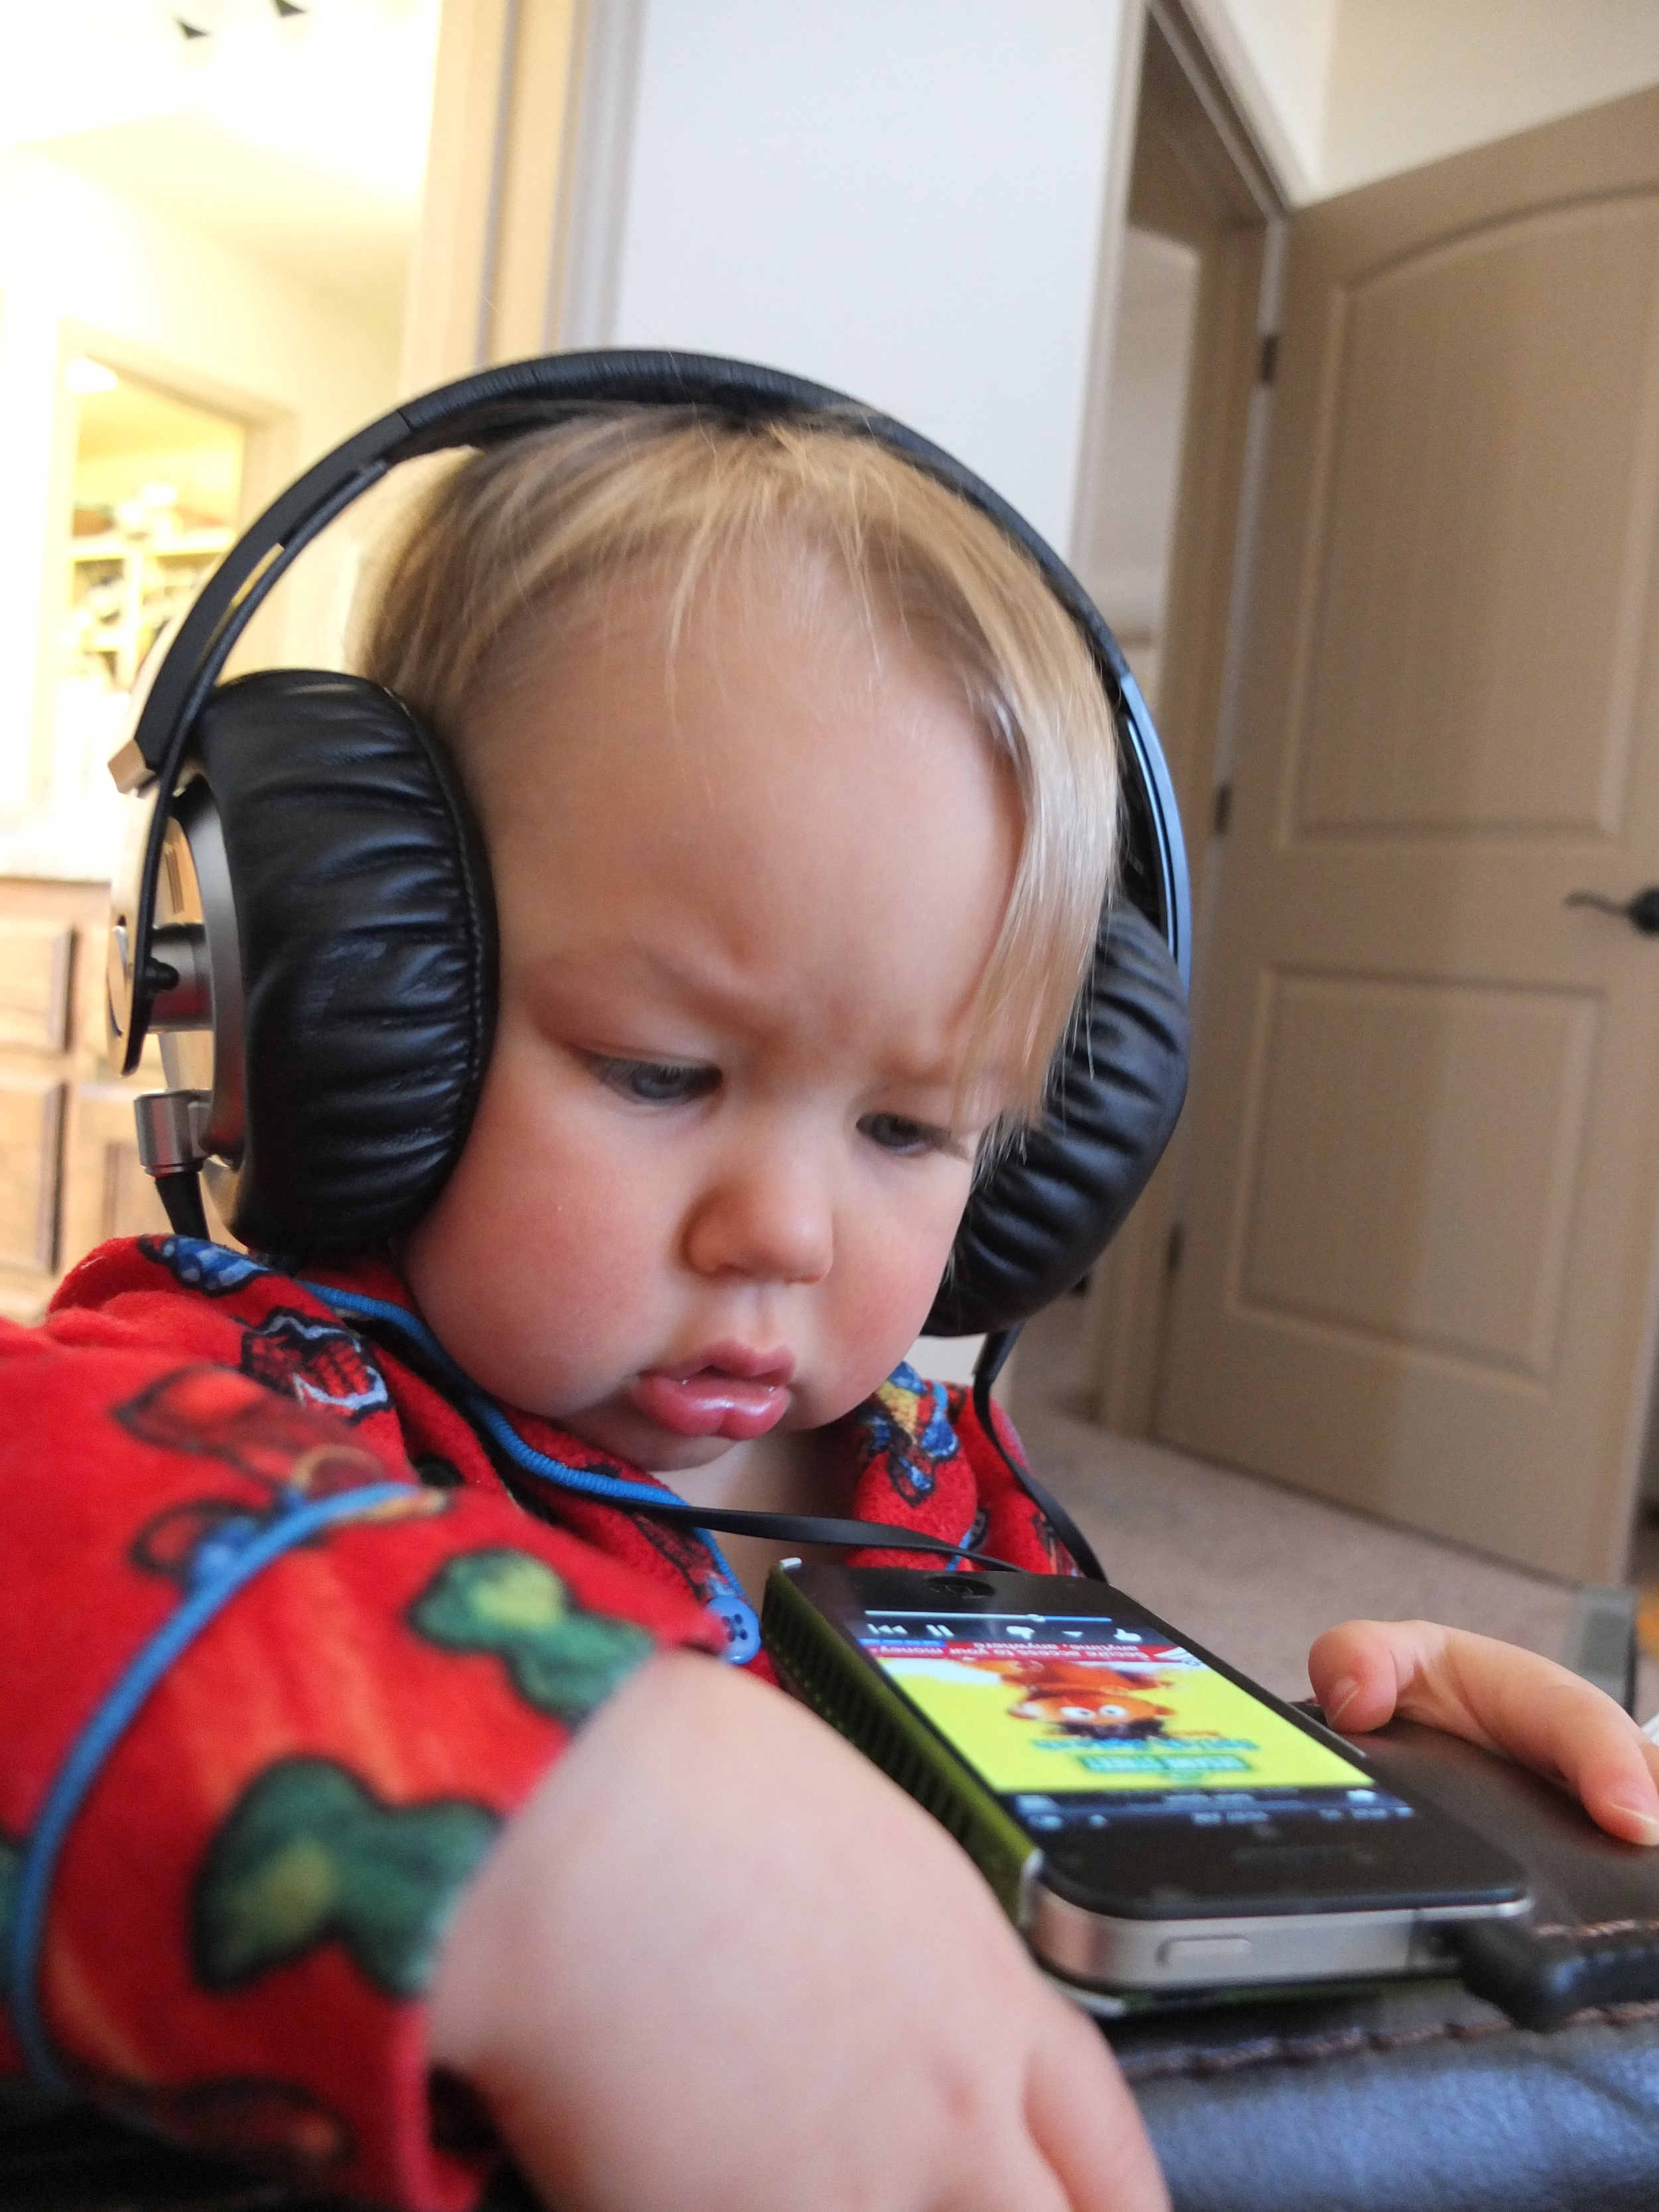 You can see from Baby Gaby's face that listening to new music gets your brain going. Ernie was new stuff for him. Ah the days. He's so little and cute here. My baby is getting too big.